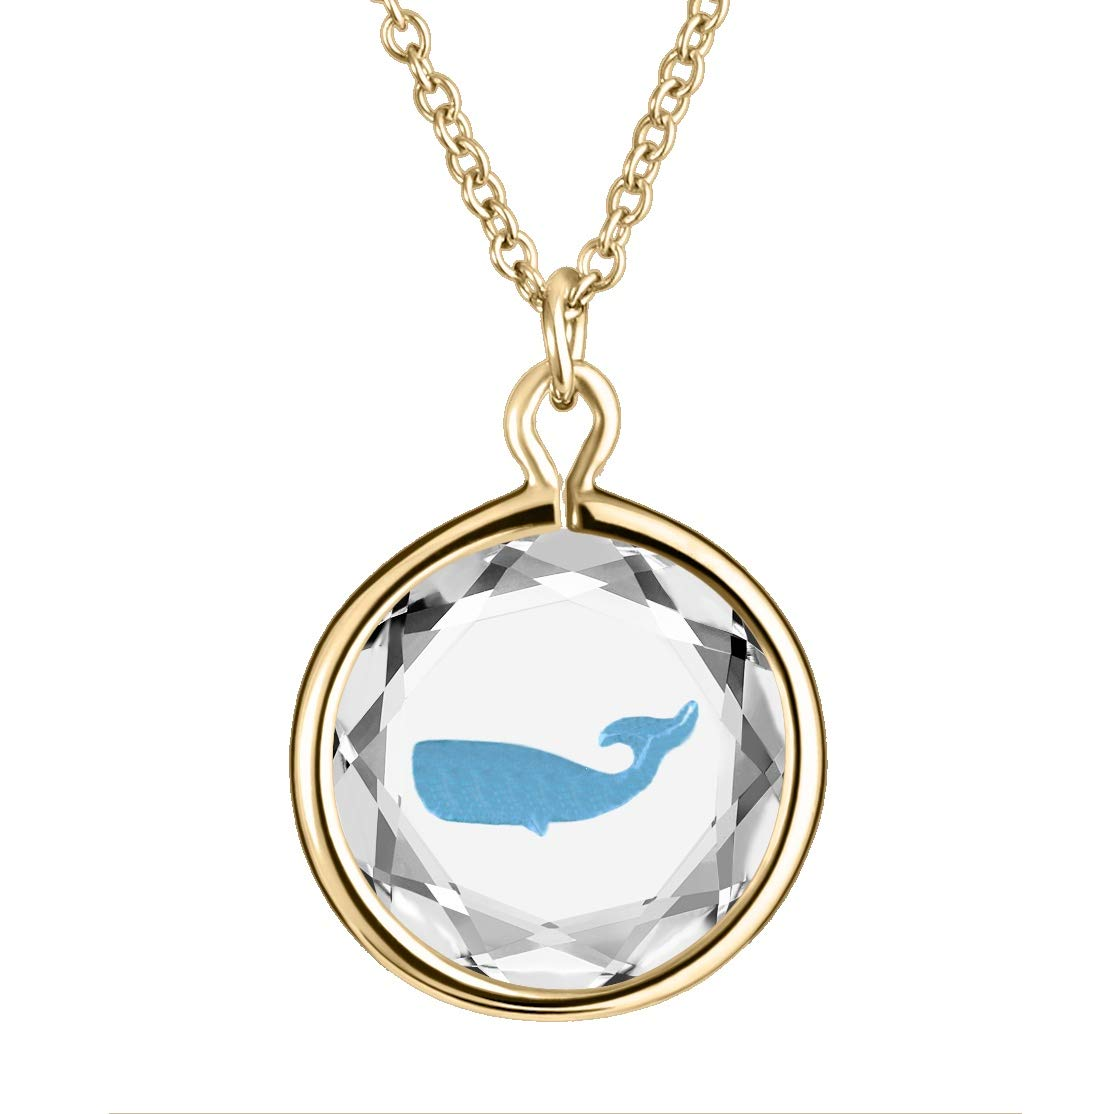 LovePendants Necklace or Charm in Swarovski Crystal with Enameled WHALE Engraving in Sterling-Silver